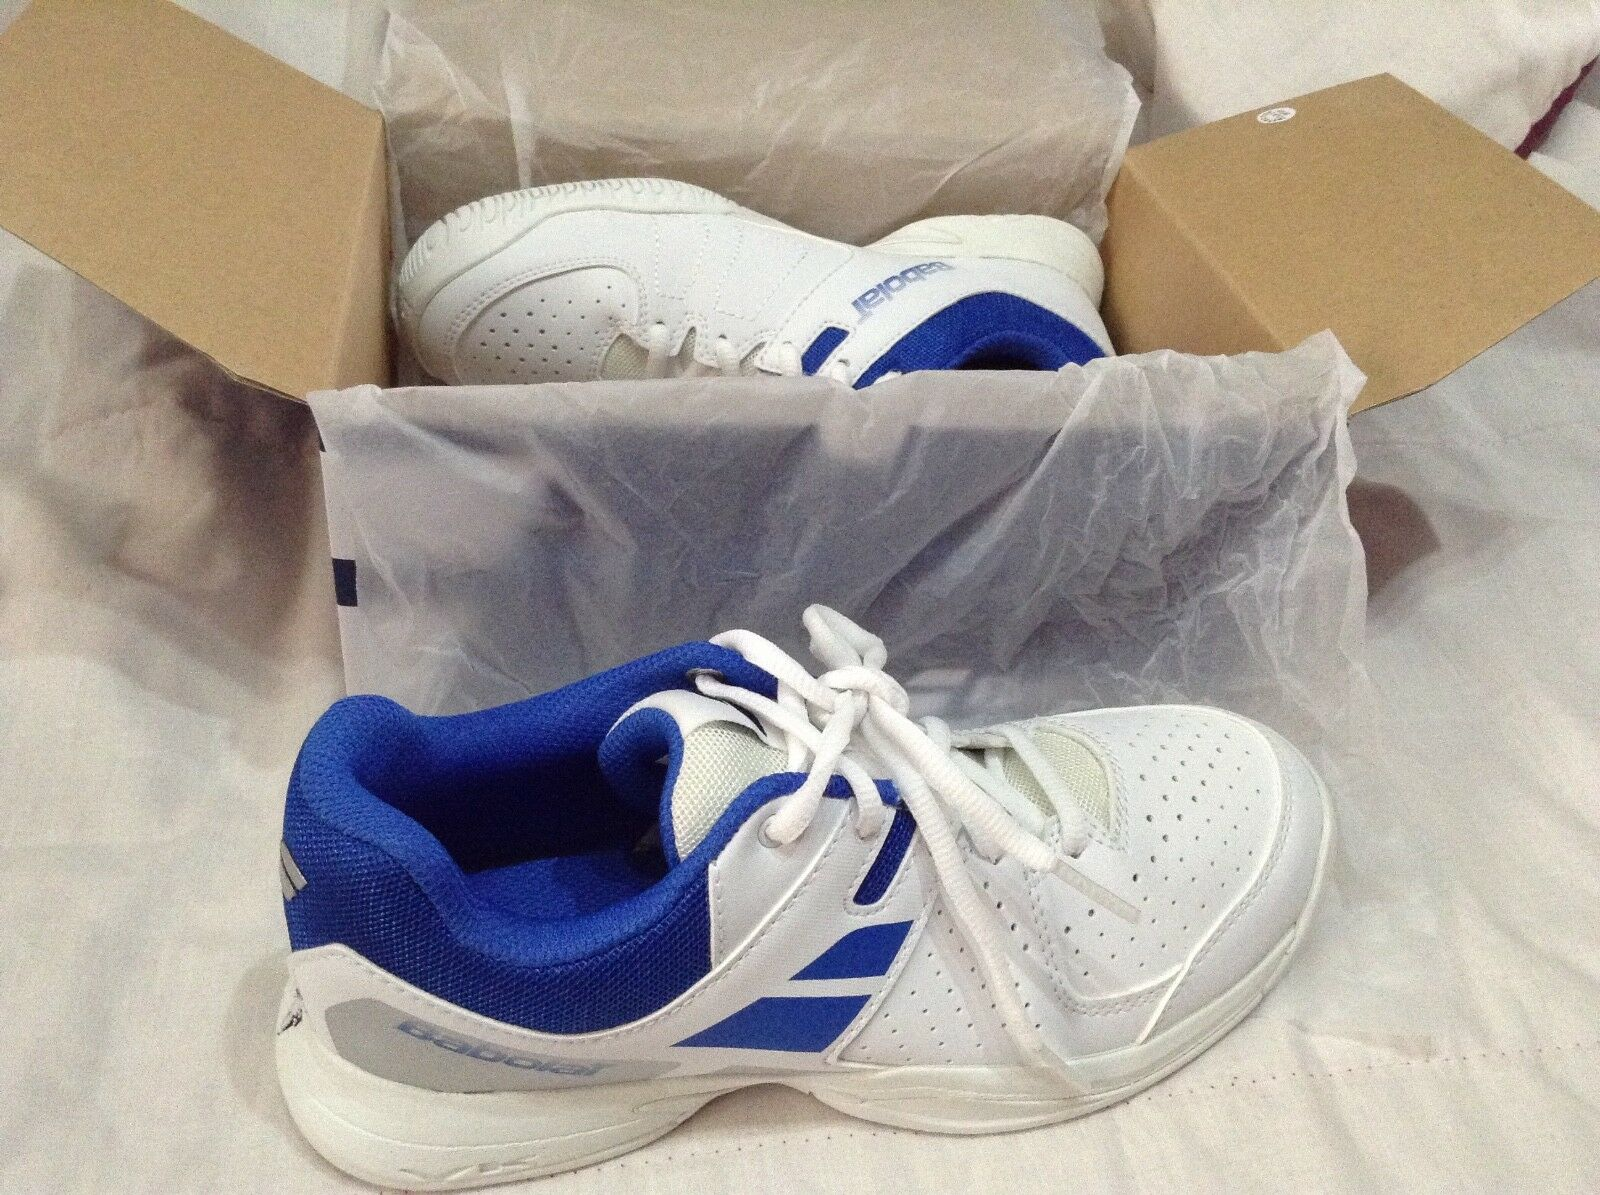 Babolat junior pulsion all court tennis shoes size 4 uk